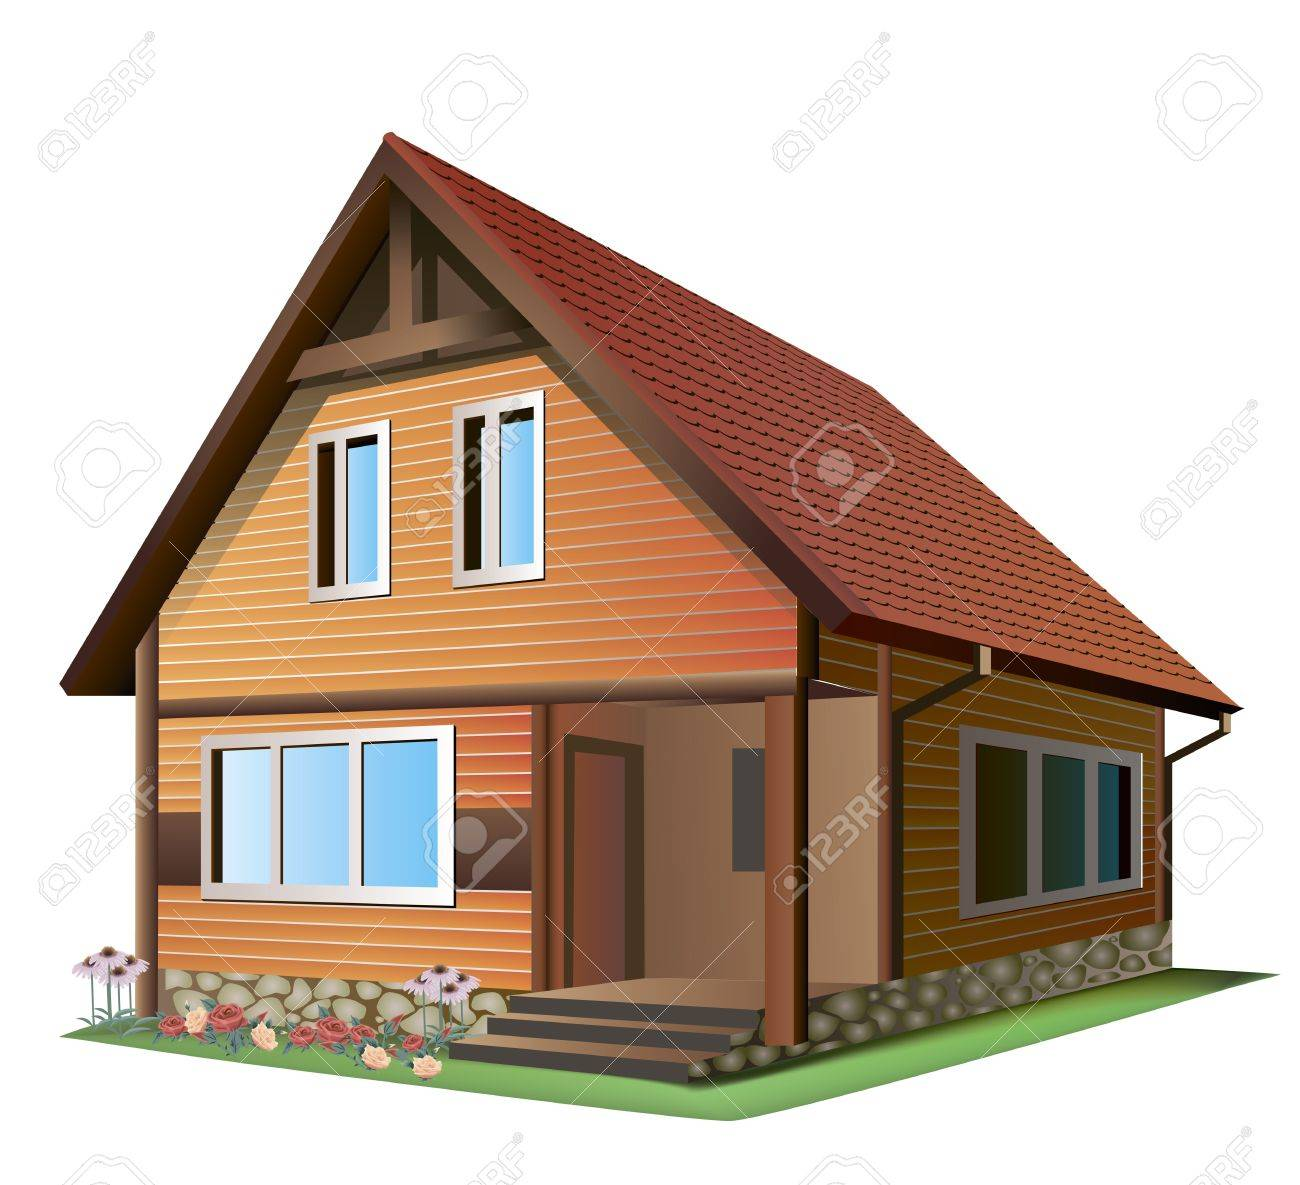 Illustration Of Small House With Tile Roof On A White Background Royalty Free Cliparts Vectors And Stock Illustration Image 17448846